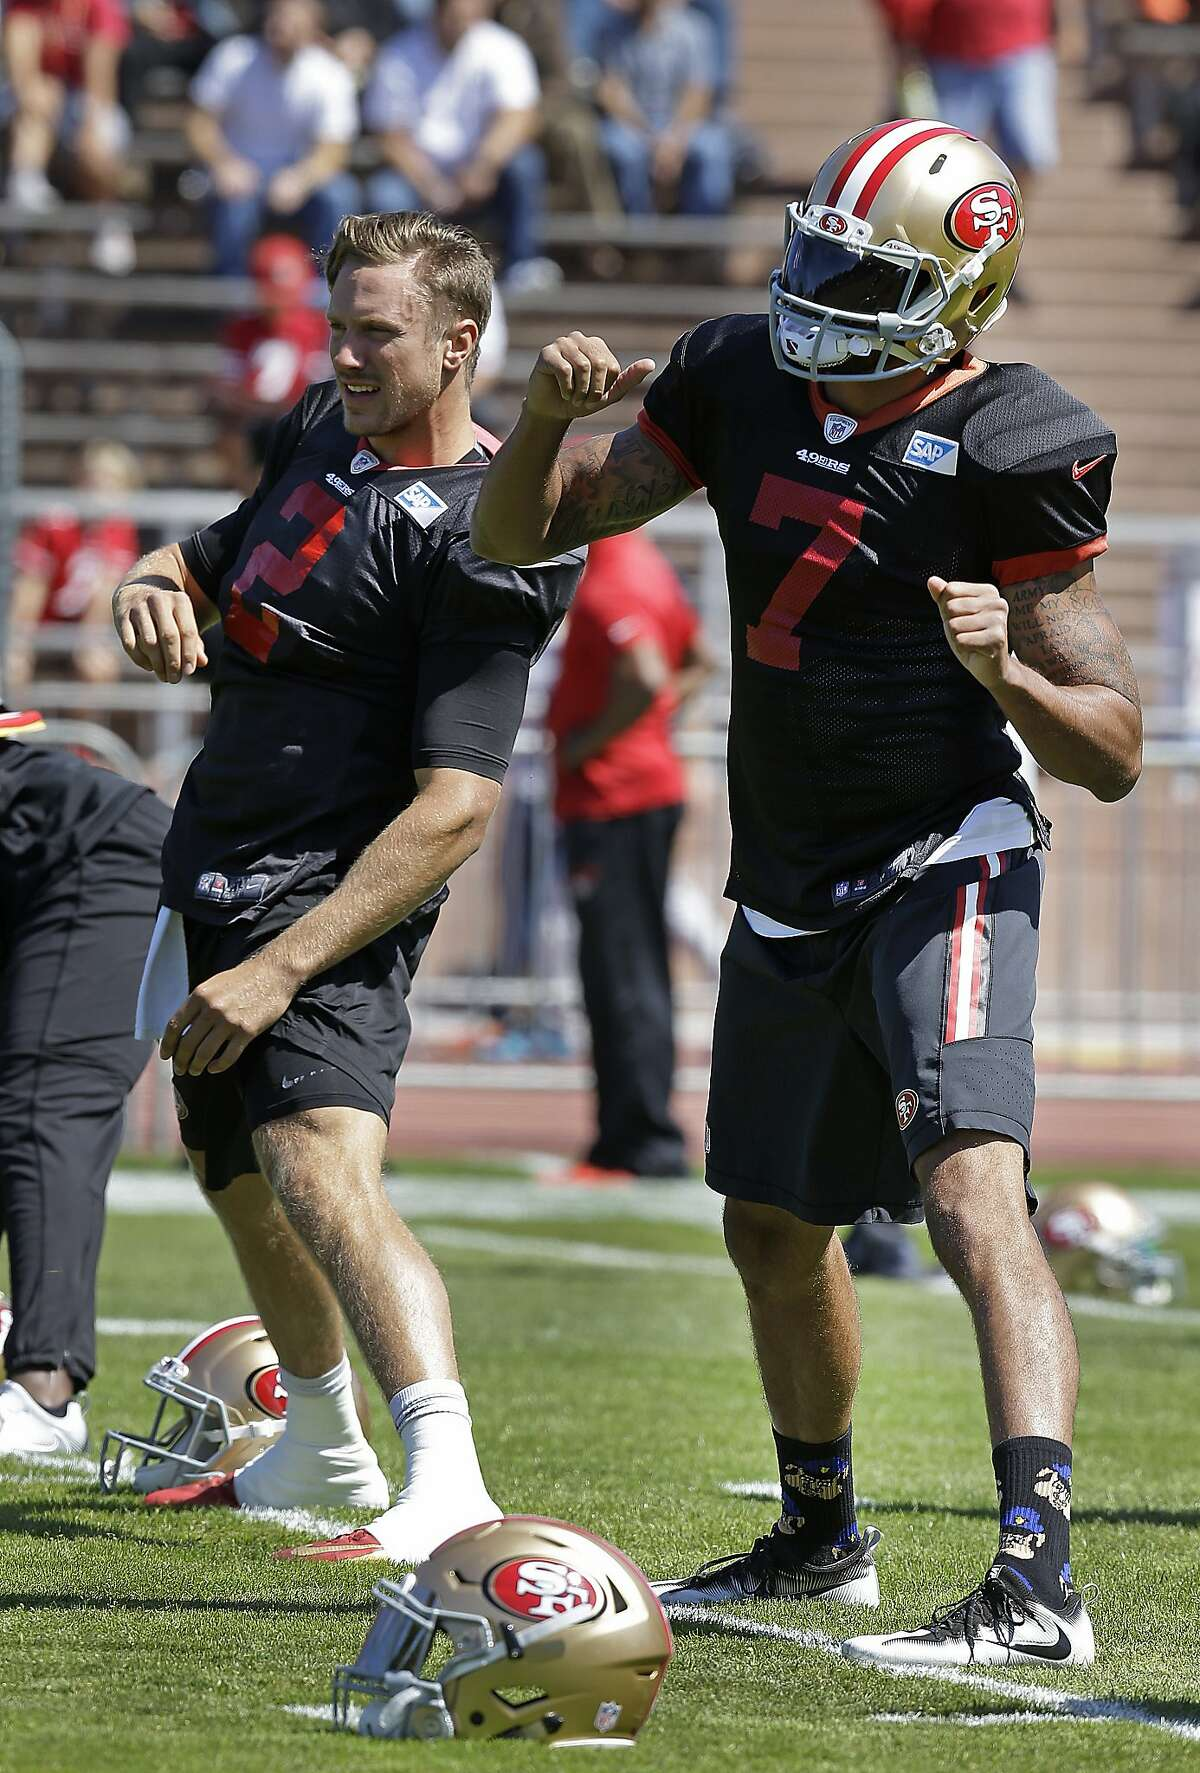 San Francisco 49ers quarterbacks Blaine Gabbert, left, and Colin Kaepernick (7) stretch during NFL football training camp, which was open to the public, Wednesday, Aug. 10, 2016, at Kezar Stadium in San Francisco. (AP Photo/Ben Margot)